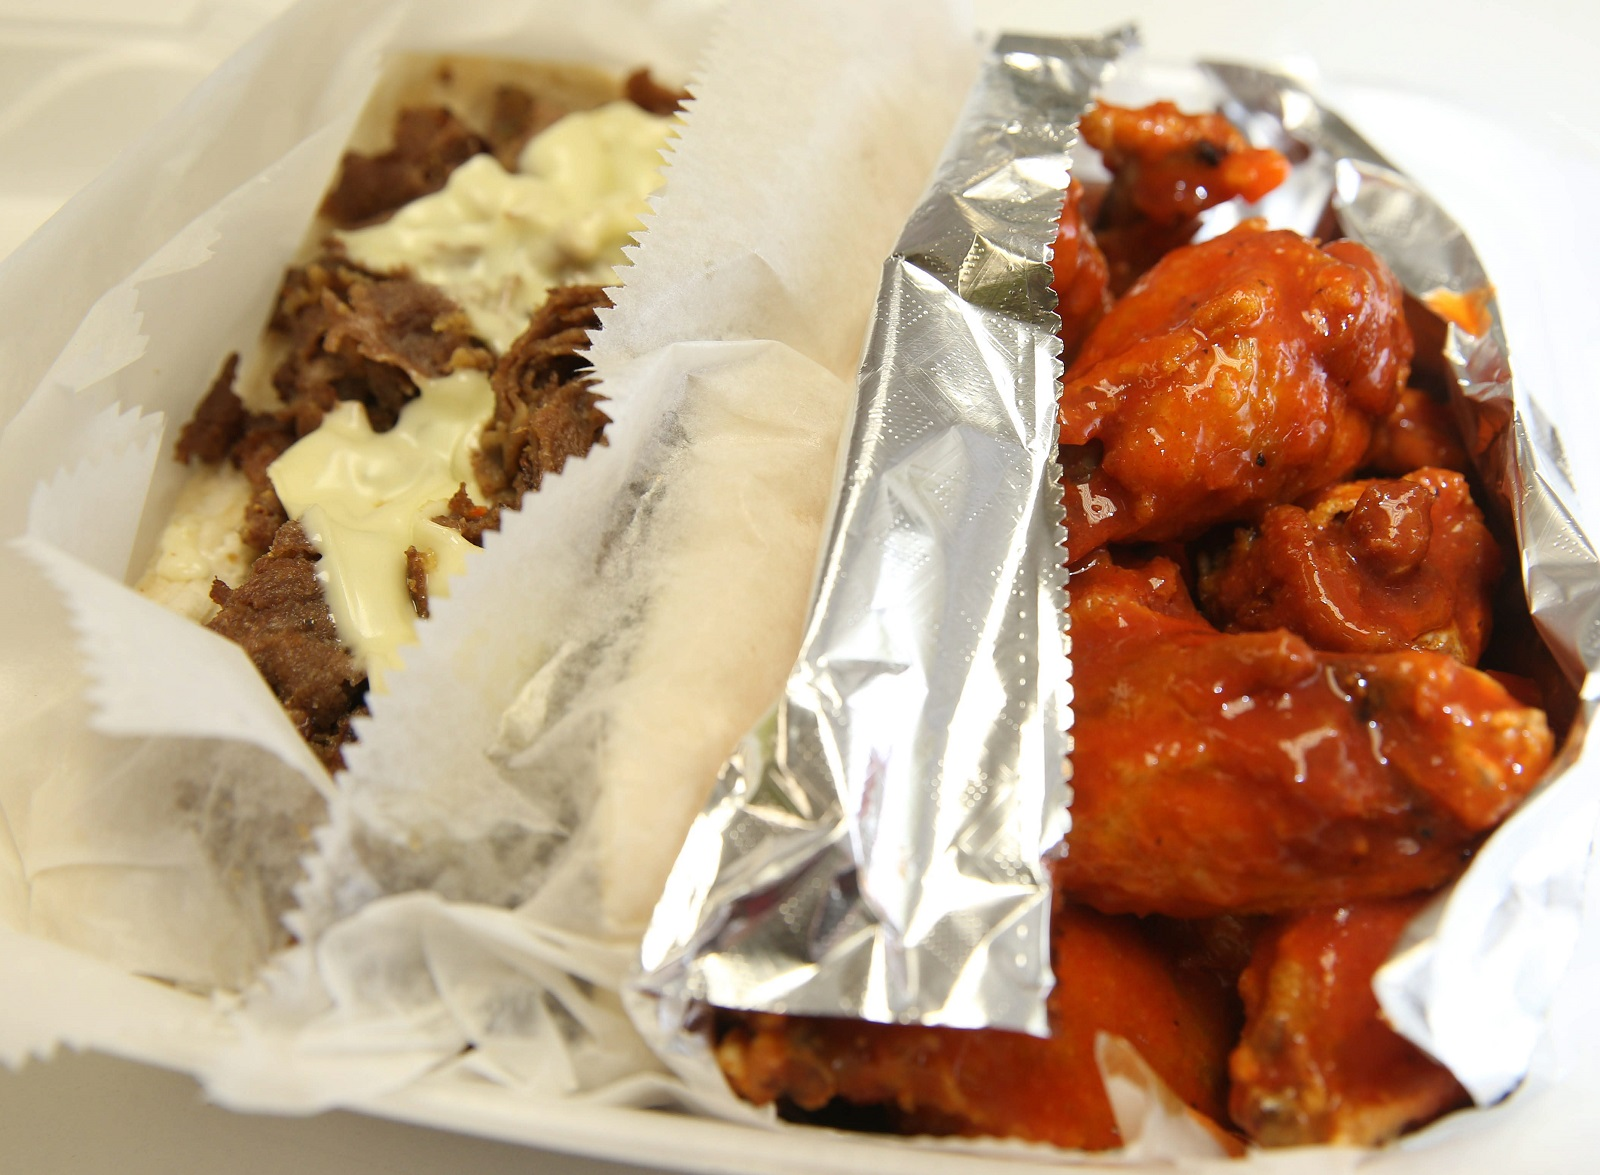 Medium wings, right, sit next to a Philly cheesesteak from DJ Cafeteria. (Sharon Cantillon/Buffalo News)